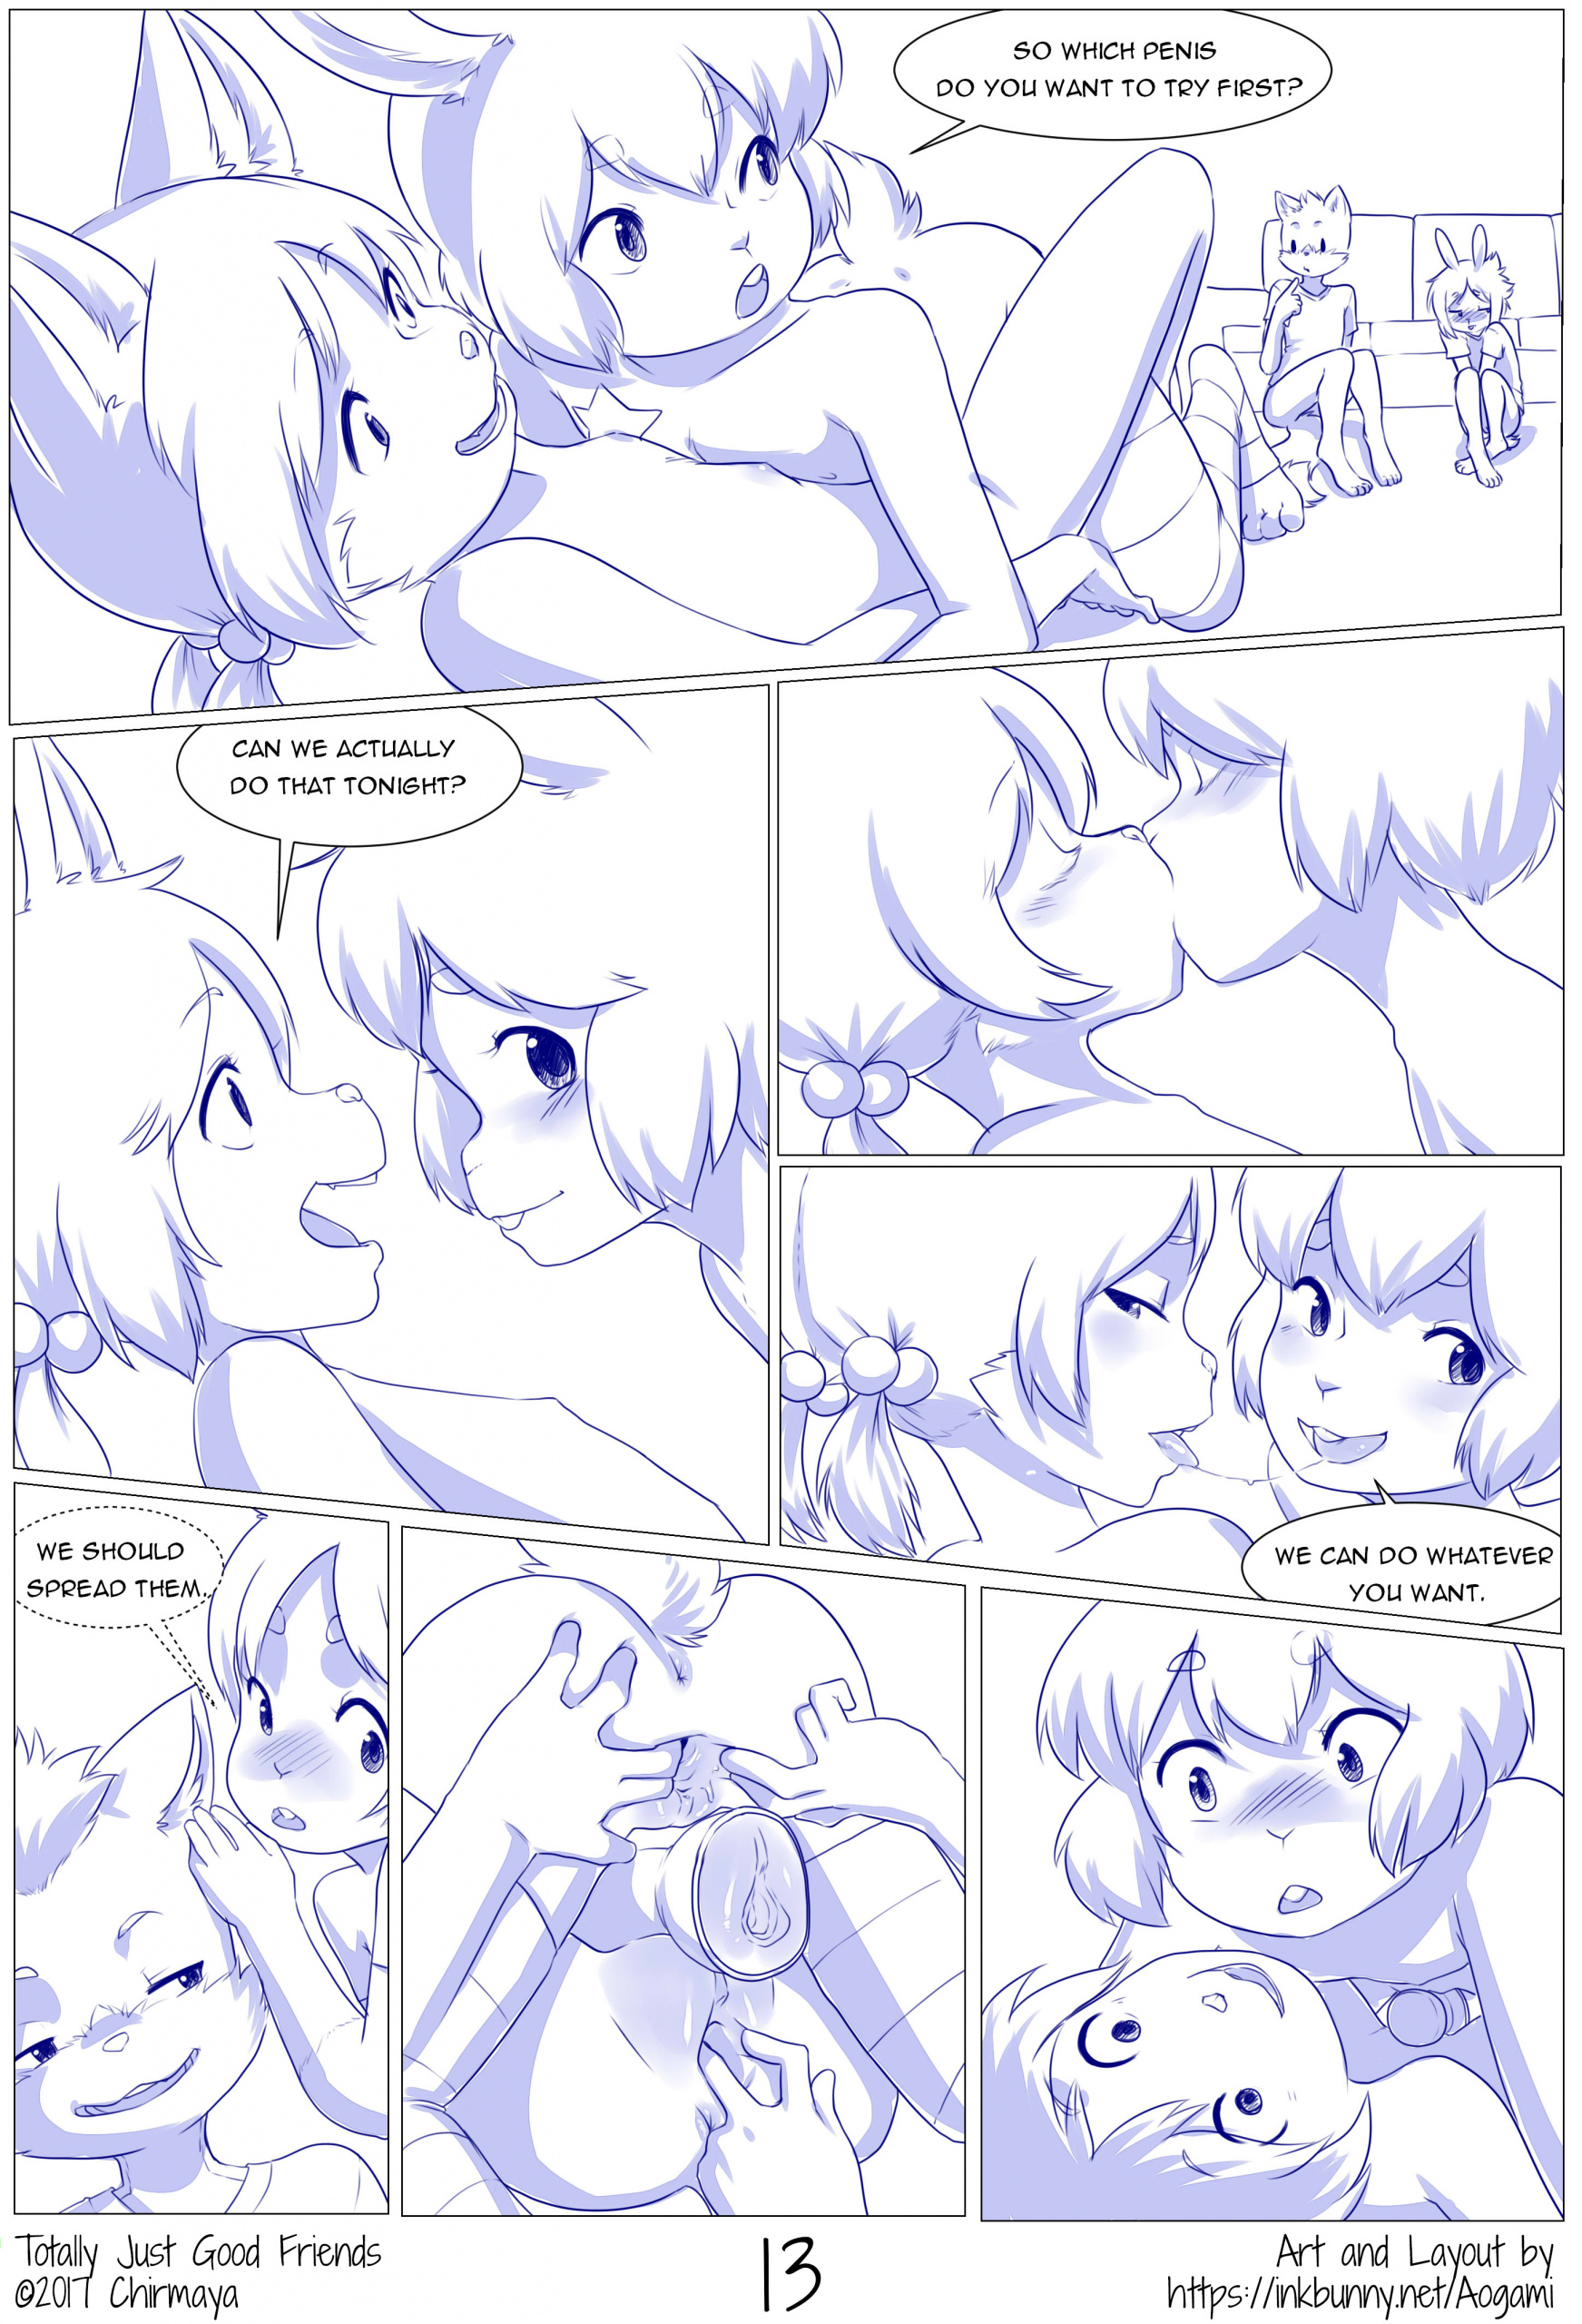 Totally Just Good Friends porn comics Oral sex, Anal Sex, Blowjob, Creampie, Cum Swallow, cunnilingus, Double Penetration, fingering, Furry, Gangbang, Group Sex, Lesbians, Lolicon, Masturbation, Sex Toys, Stockings, Straight, Straight Shota, Threesome, Virgin, X-Ray